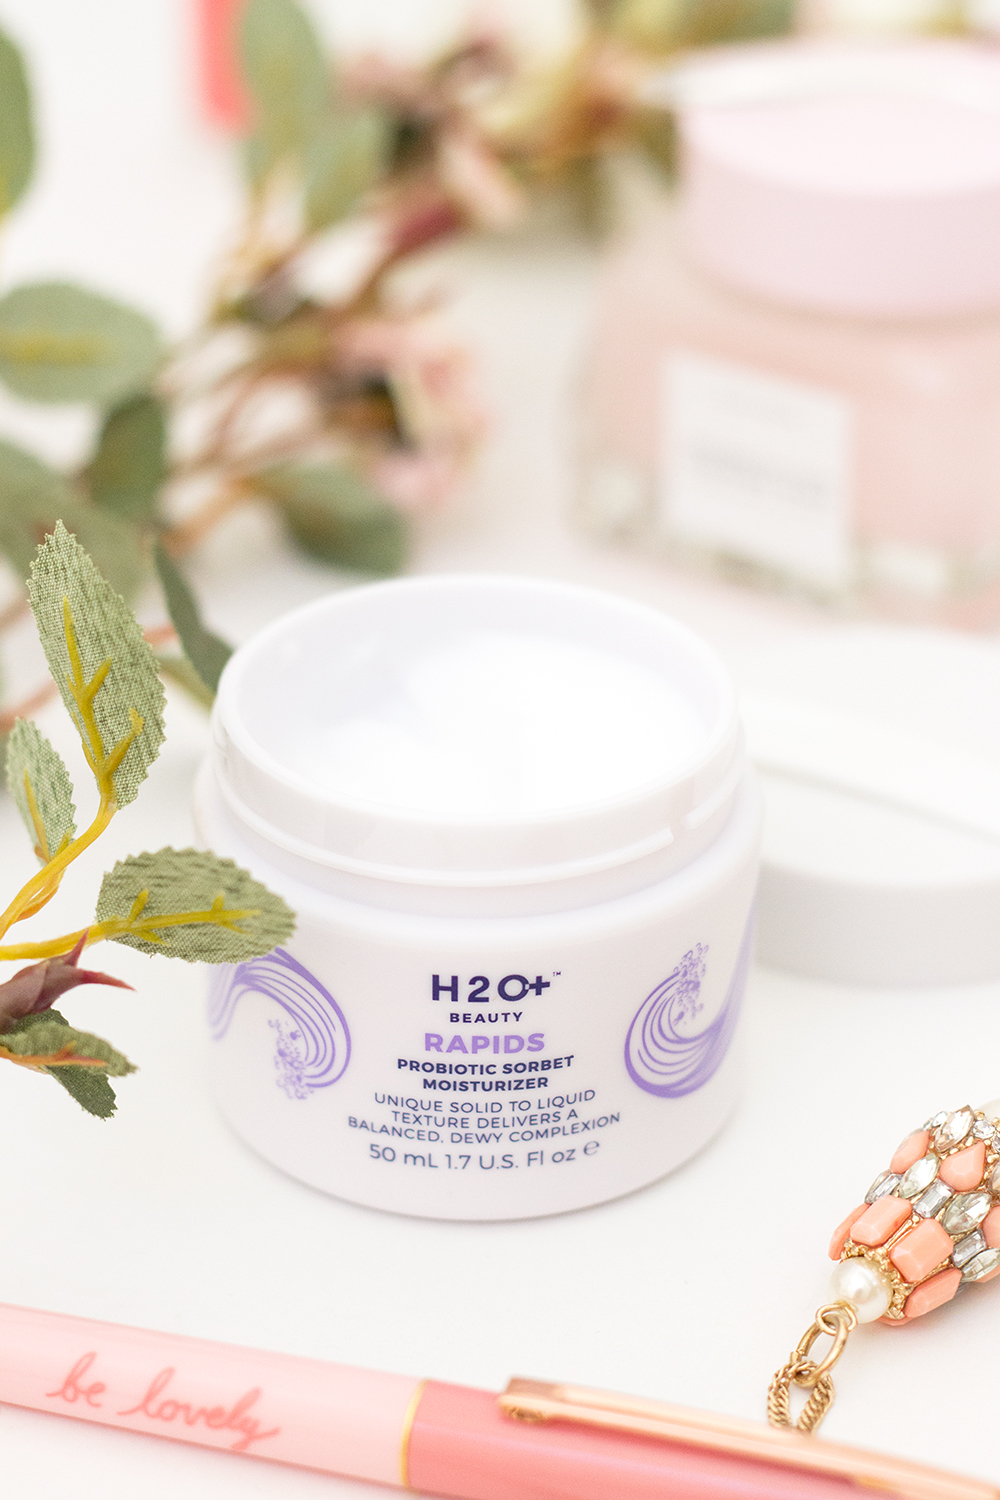 H2O+ Beauty Rapids Probiotic Sorbet Moisturizer